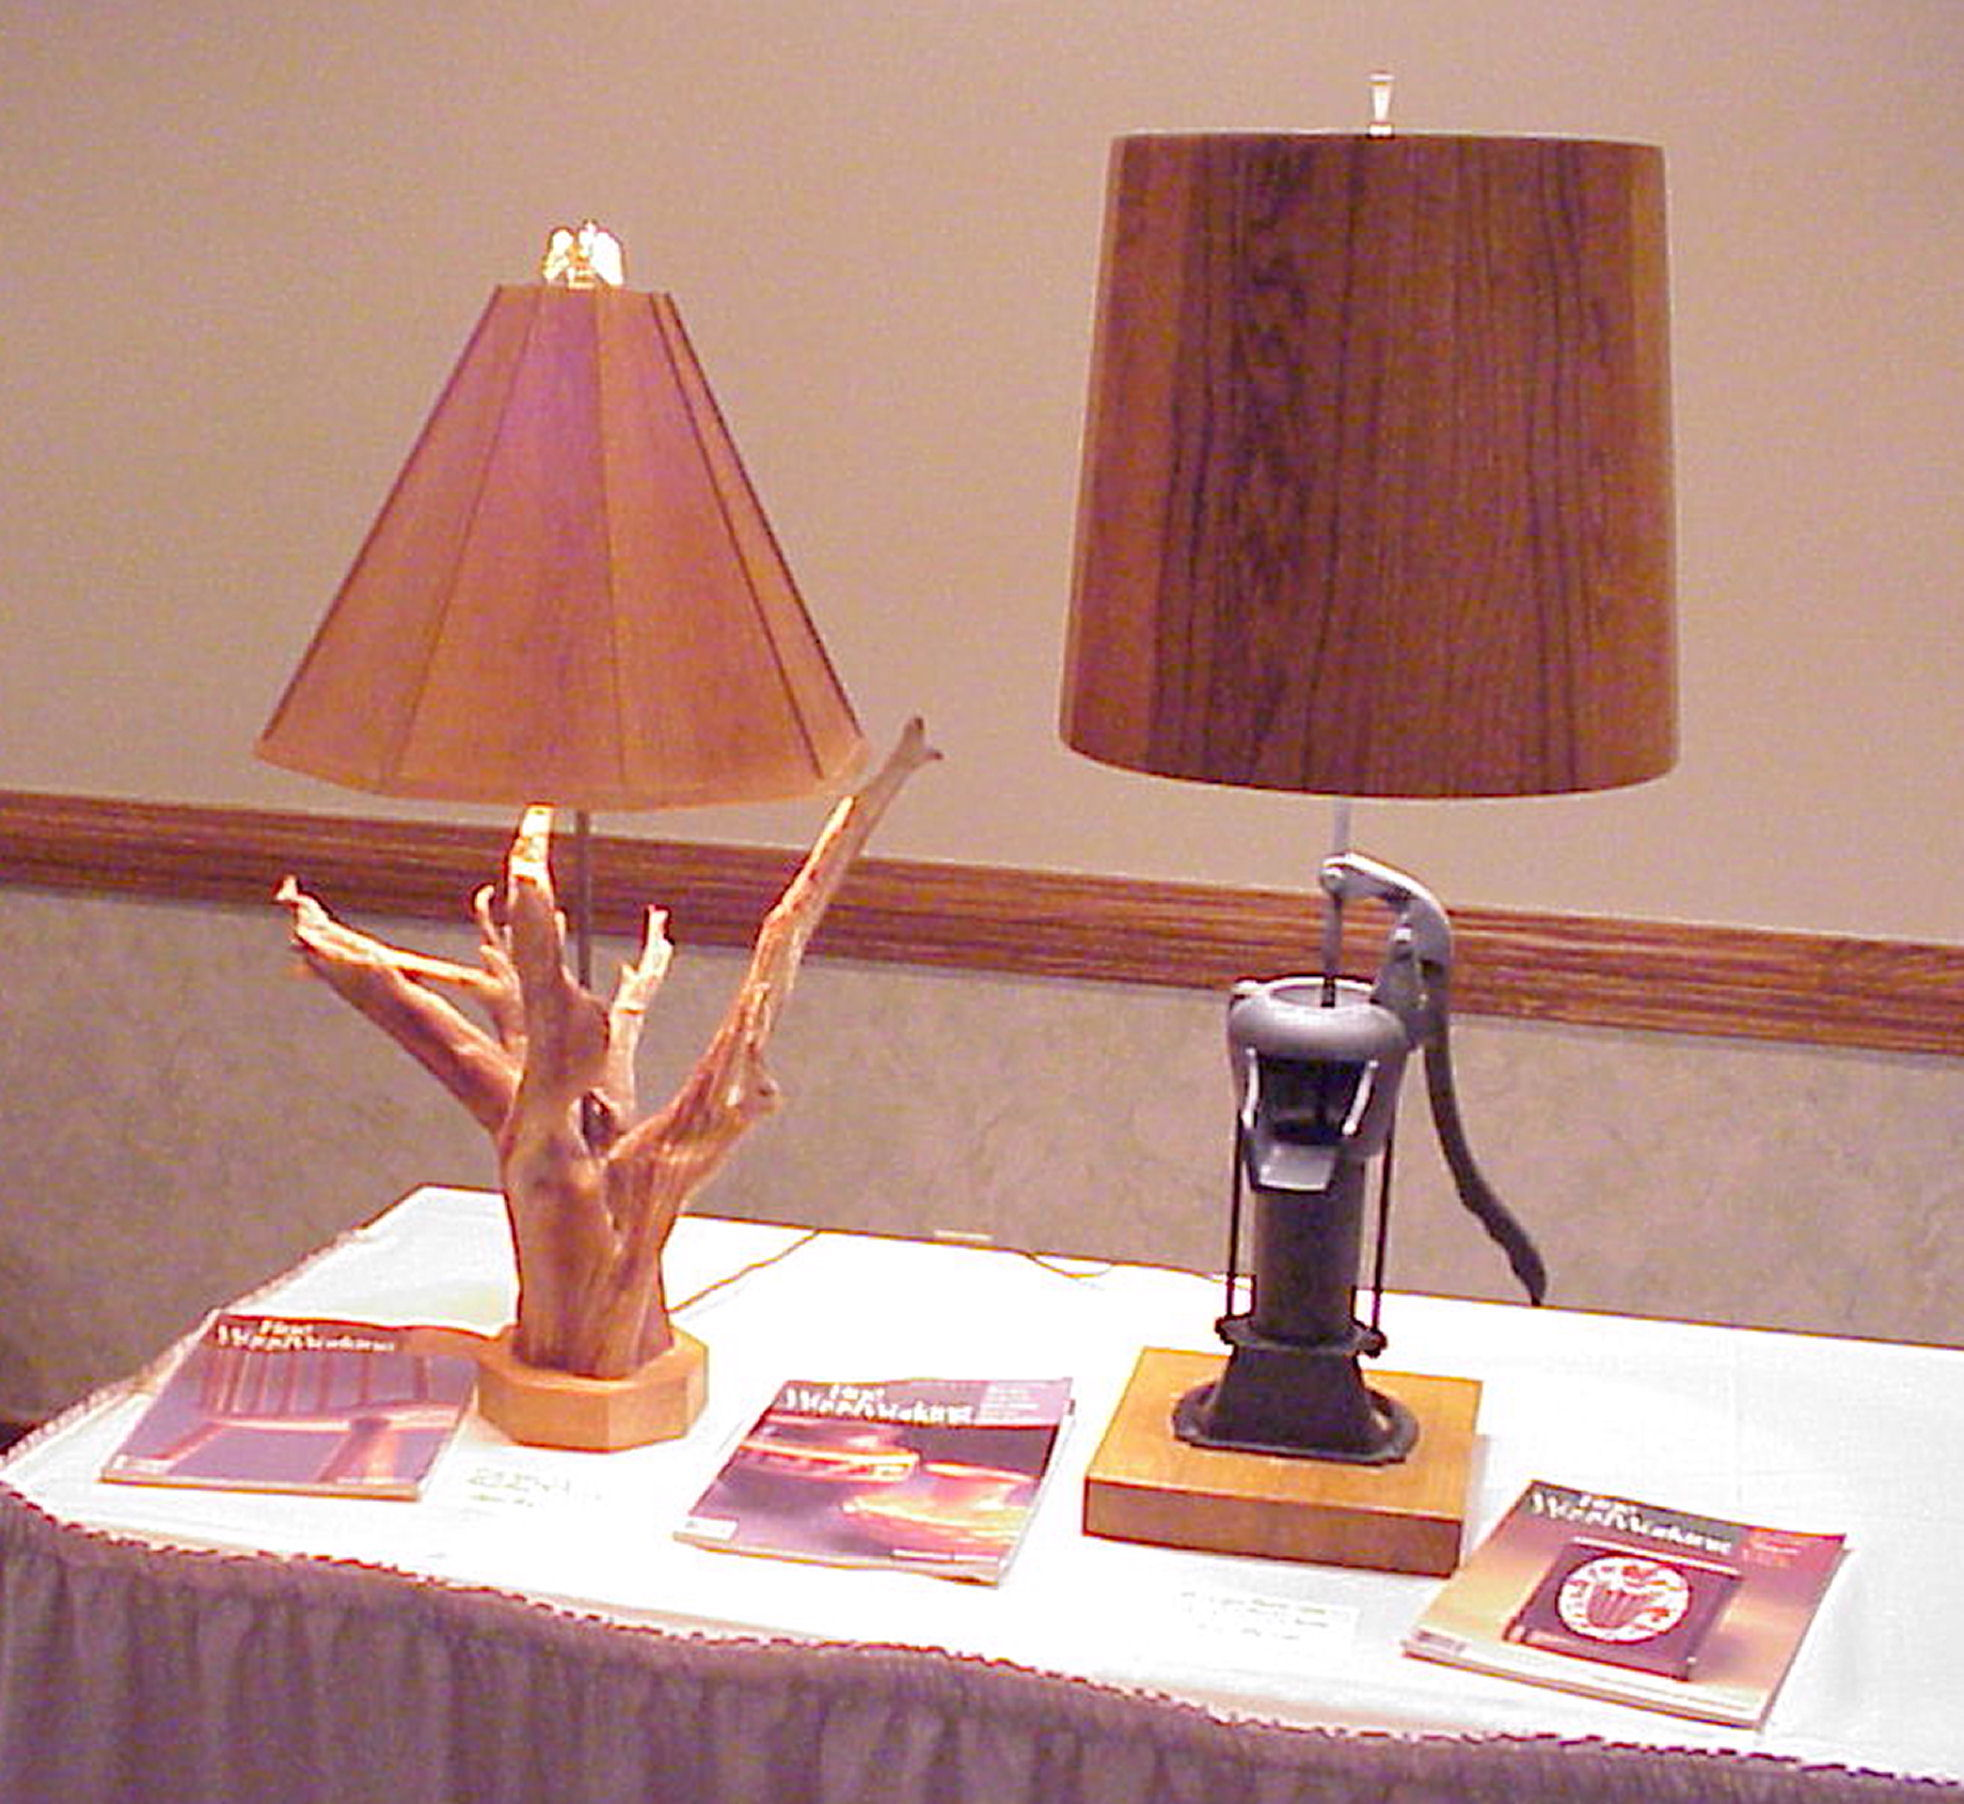 Oak and Pine Table Lamps.  The one with the Pine Shade has a Pine tree root taken from a colonial american farmers fence line.  The one with the Oak Shade has an antique Pitcher Pump as a base.